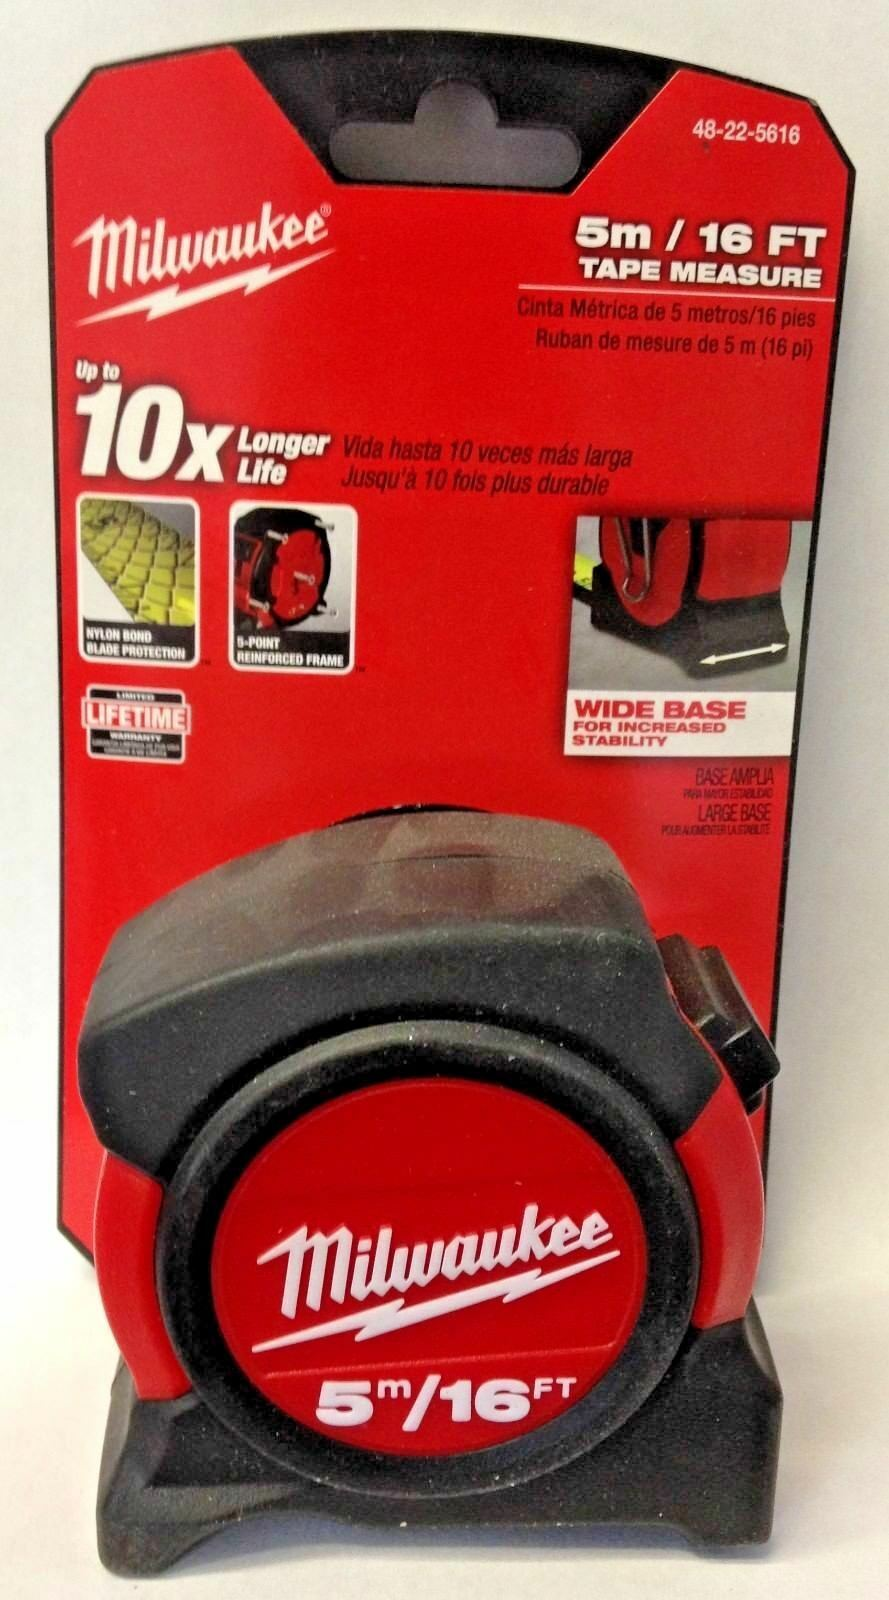 Primary image for Milwaukee 48-22-5616 5m / 16 FT Tape Measure